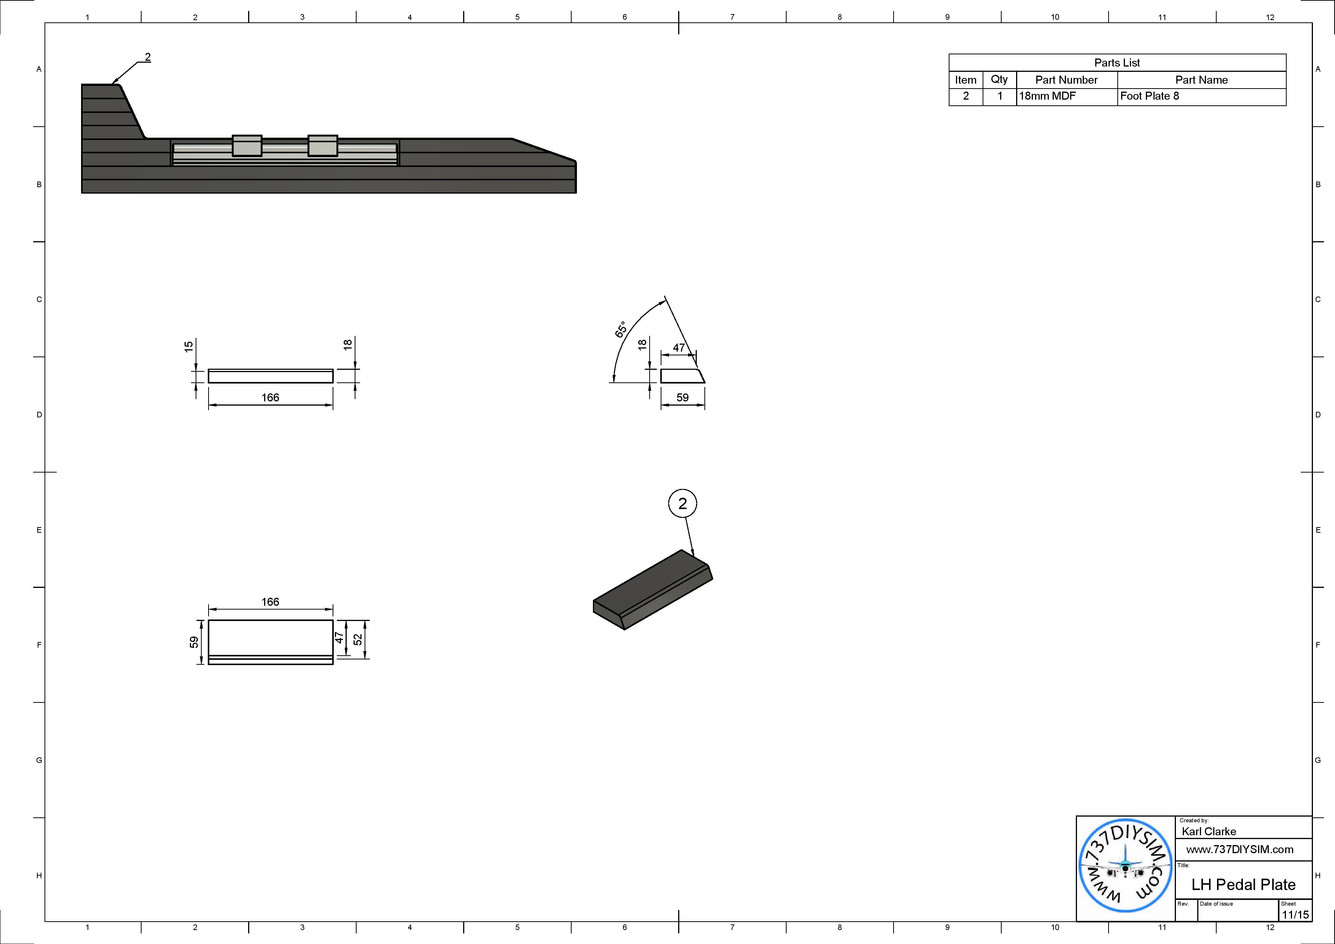 LH Pedal Plate Drawing v1-page-011.jpg